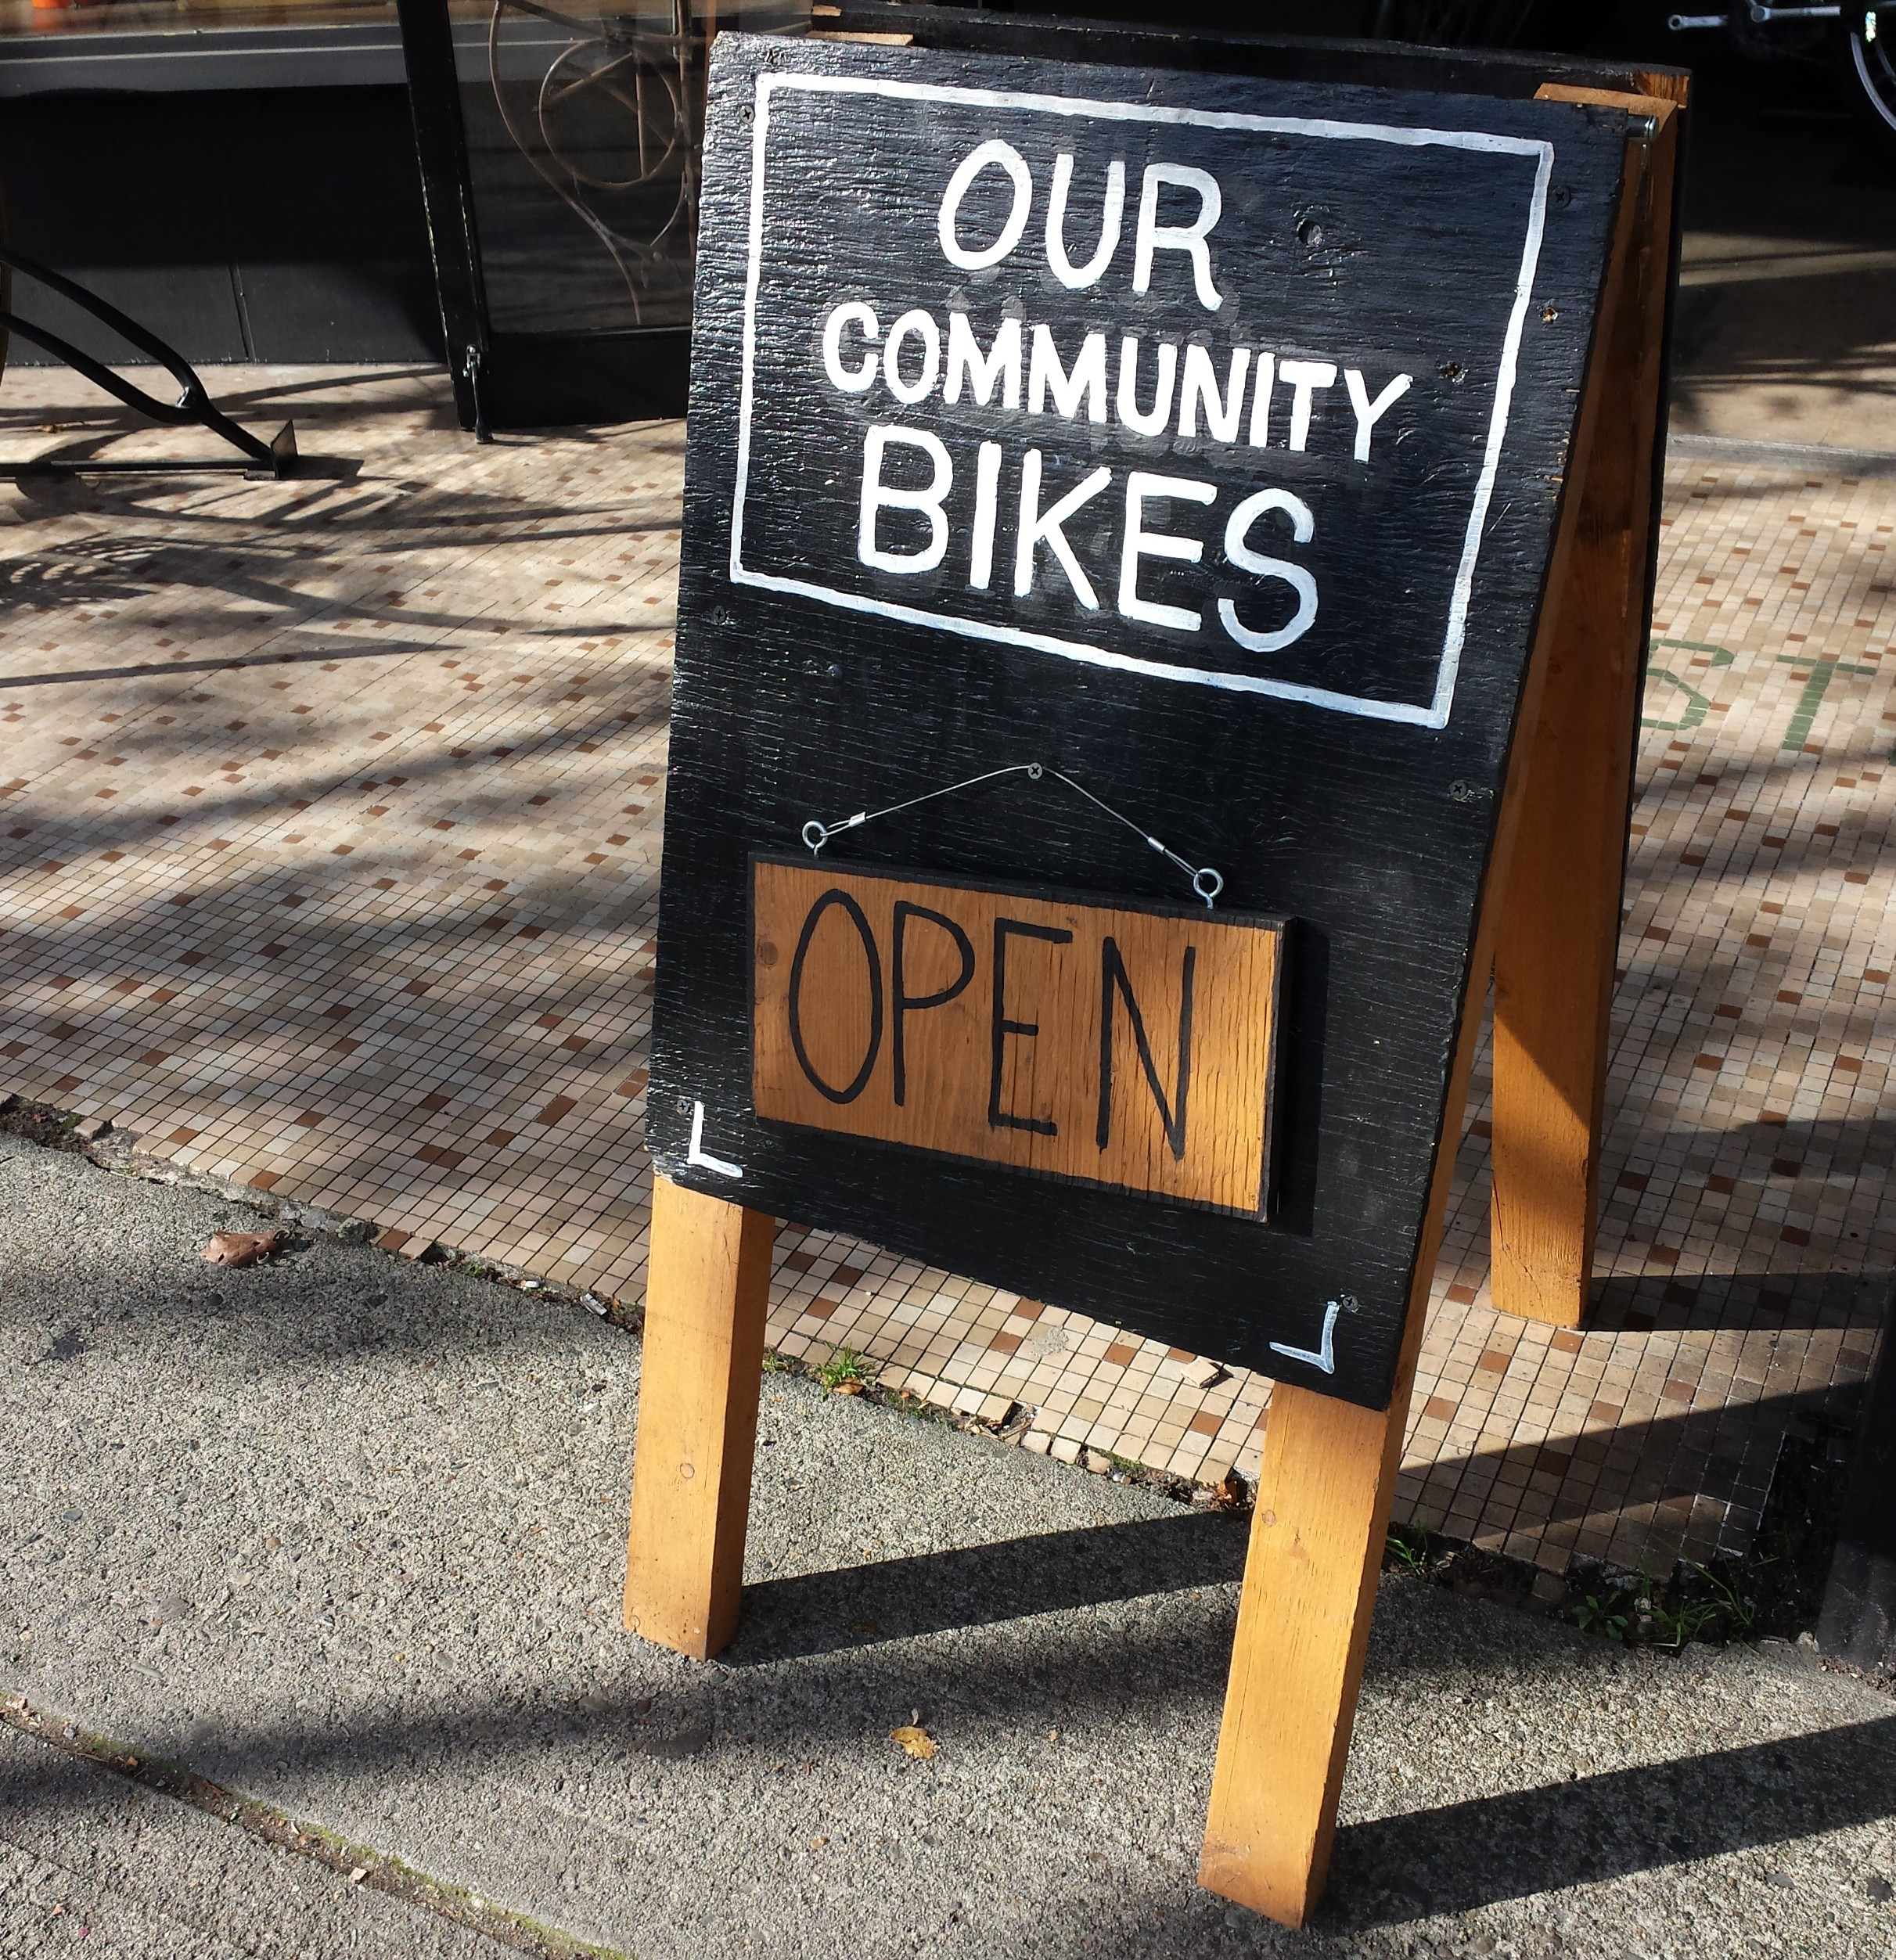 Our Community Bikes open for business